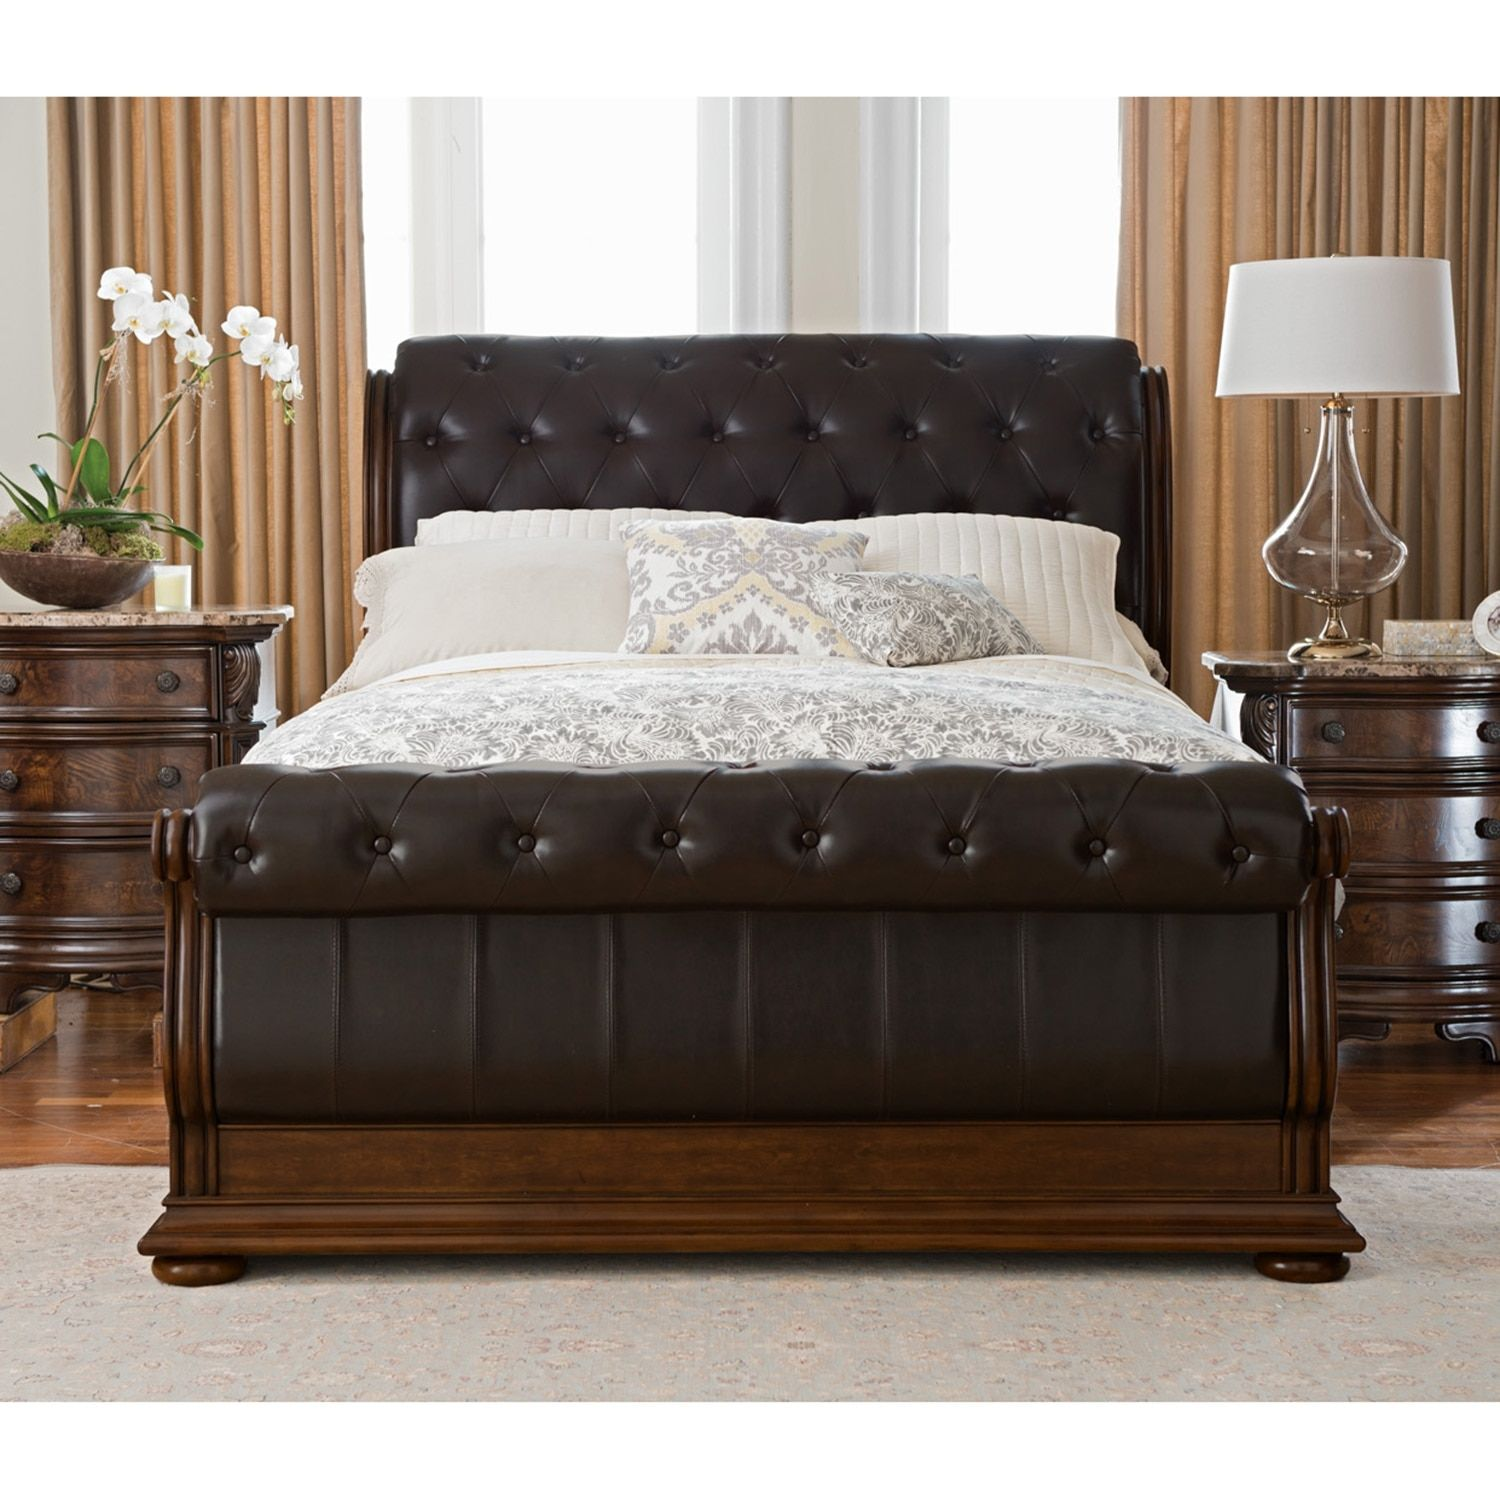 lou p king stoney new number house universal louie bedroom sets products item s creek sleigh b furniture bed